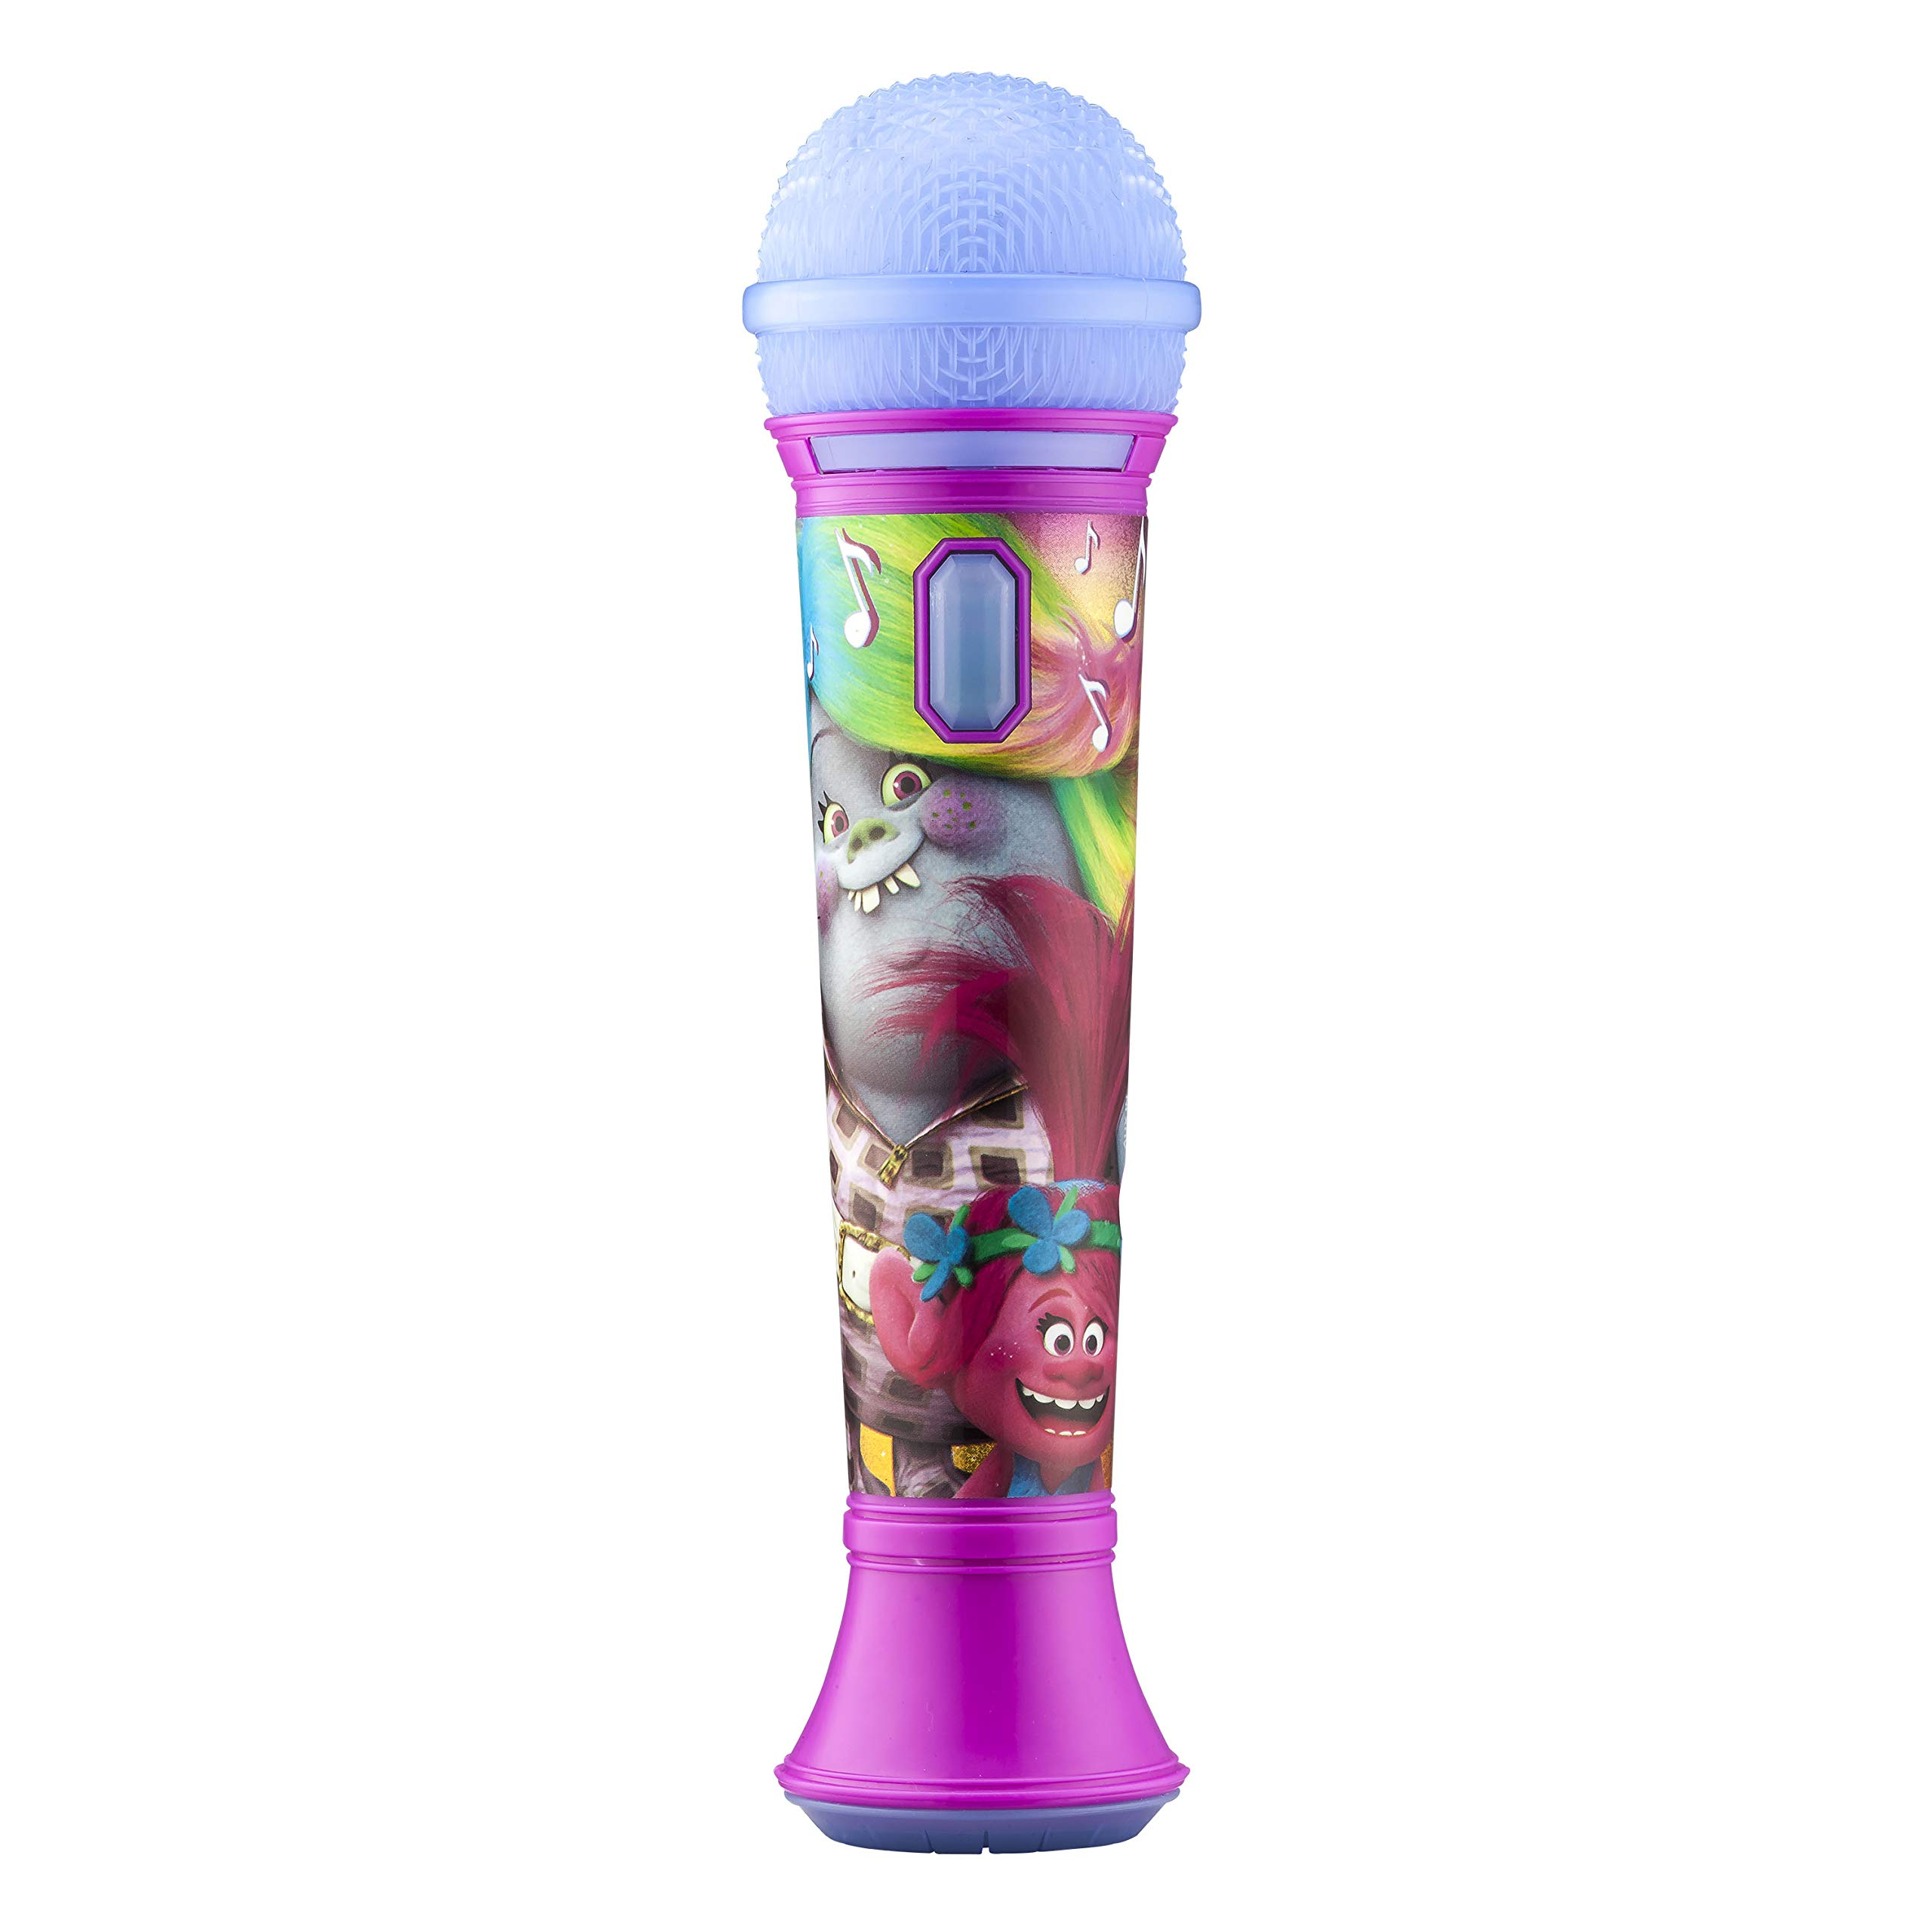 Trolls Sing Along MP3 Microphone Sing to Built in Music or Connect Your Audio Device and Sing to Whatever You Like by eKids (Image #1)